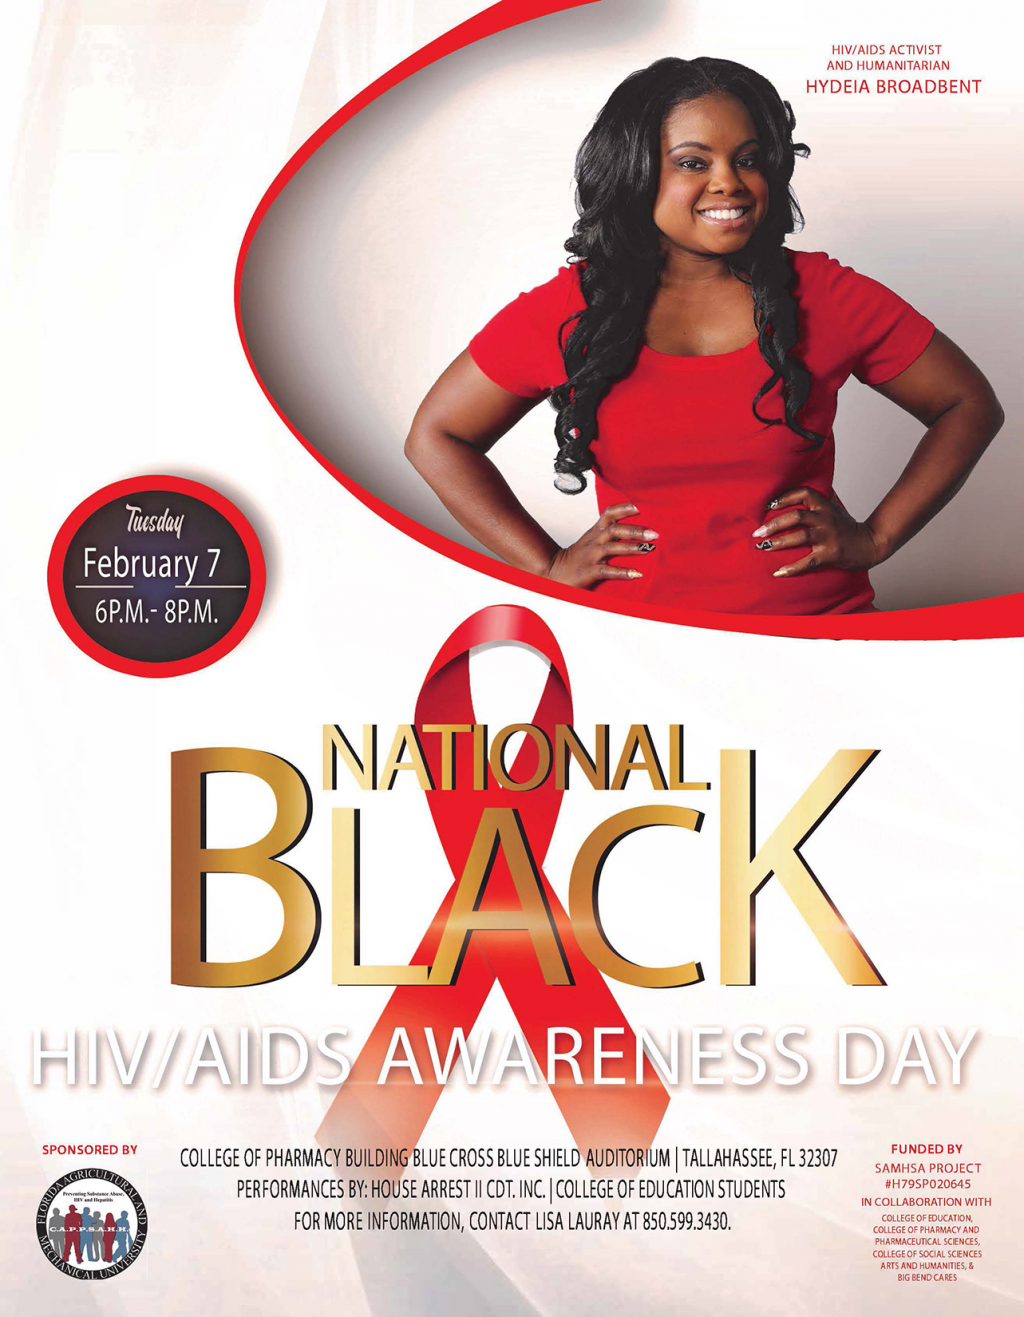 Activist brings HIV/AIDS Awareness to the campus